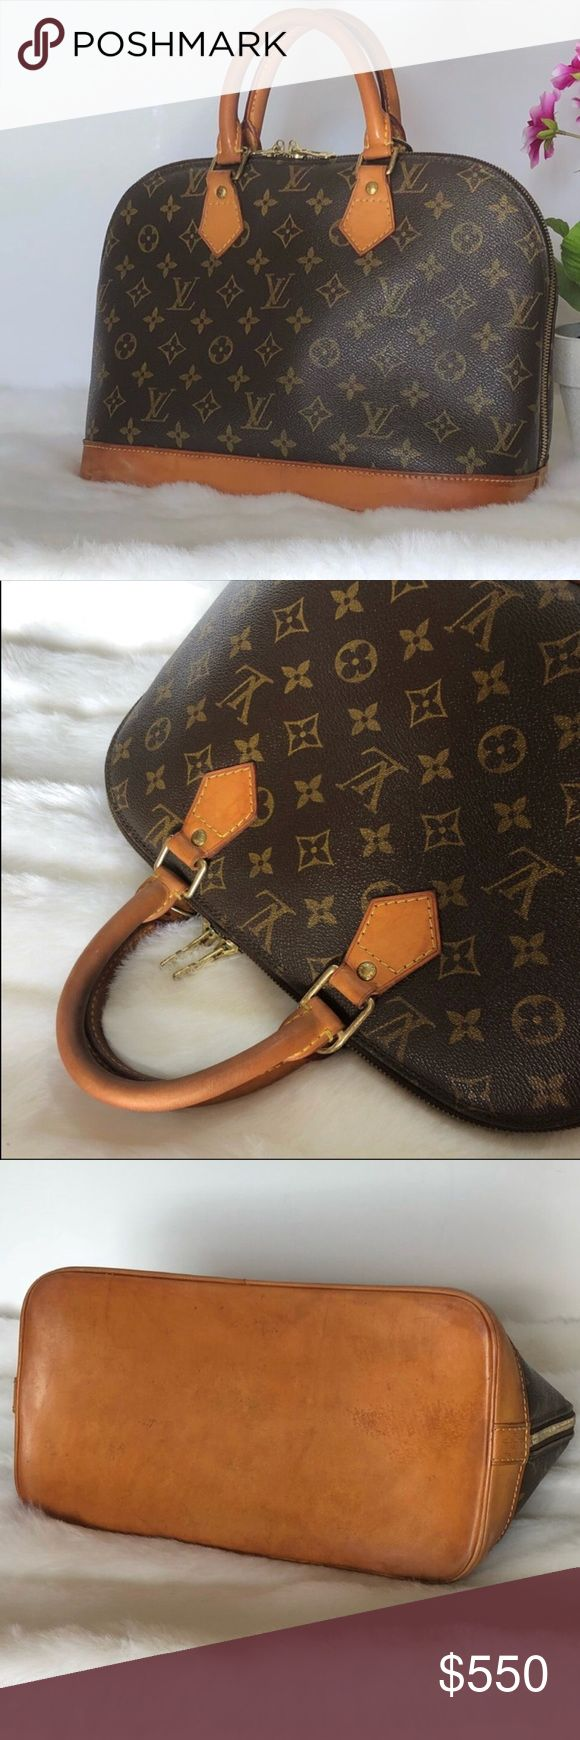 """Authentic Louis Vuitton Alma Louis Vuitton Alma Monogram Bag. Beautiful honey patina. Shows wear on hardware, bottom and corners overall is in good condition! Lightly used on handles. No odors. Dimensions: 9""""H x 12""""L x 6""""W. Made in France. Authentic! Louis Vuitton Bags"""